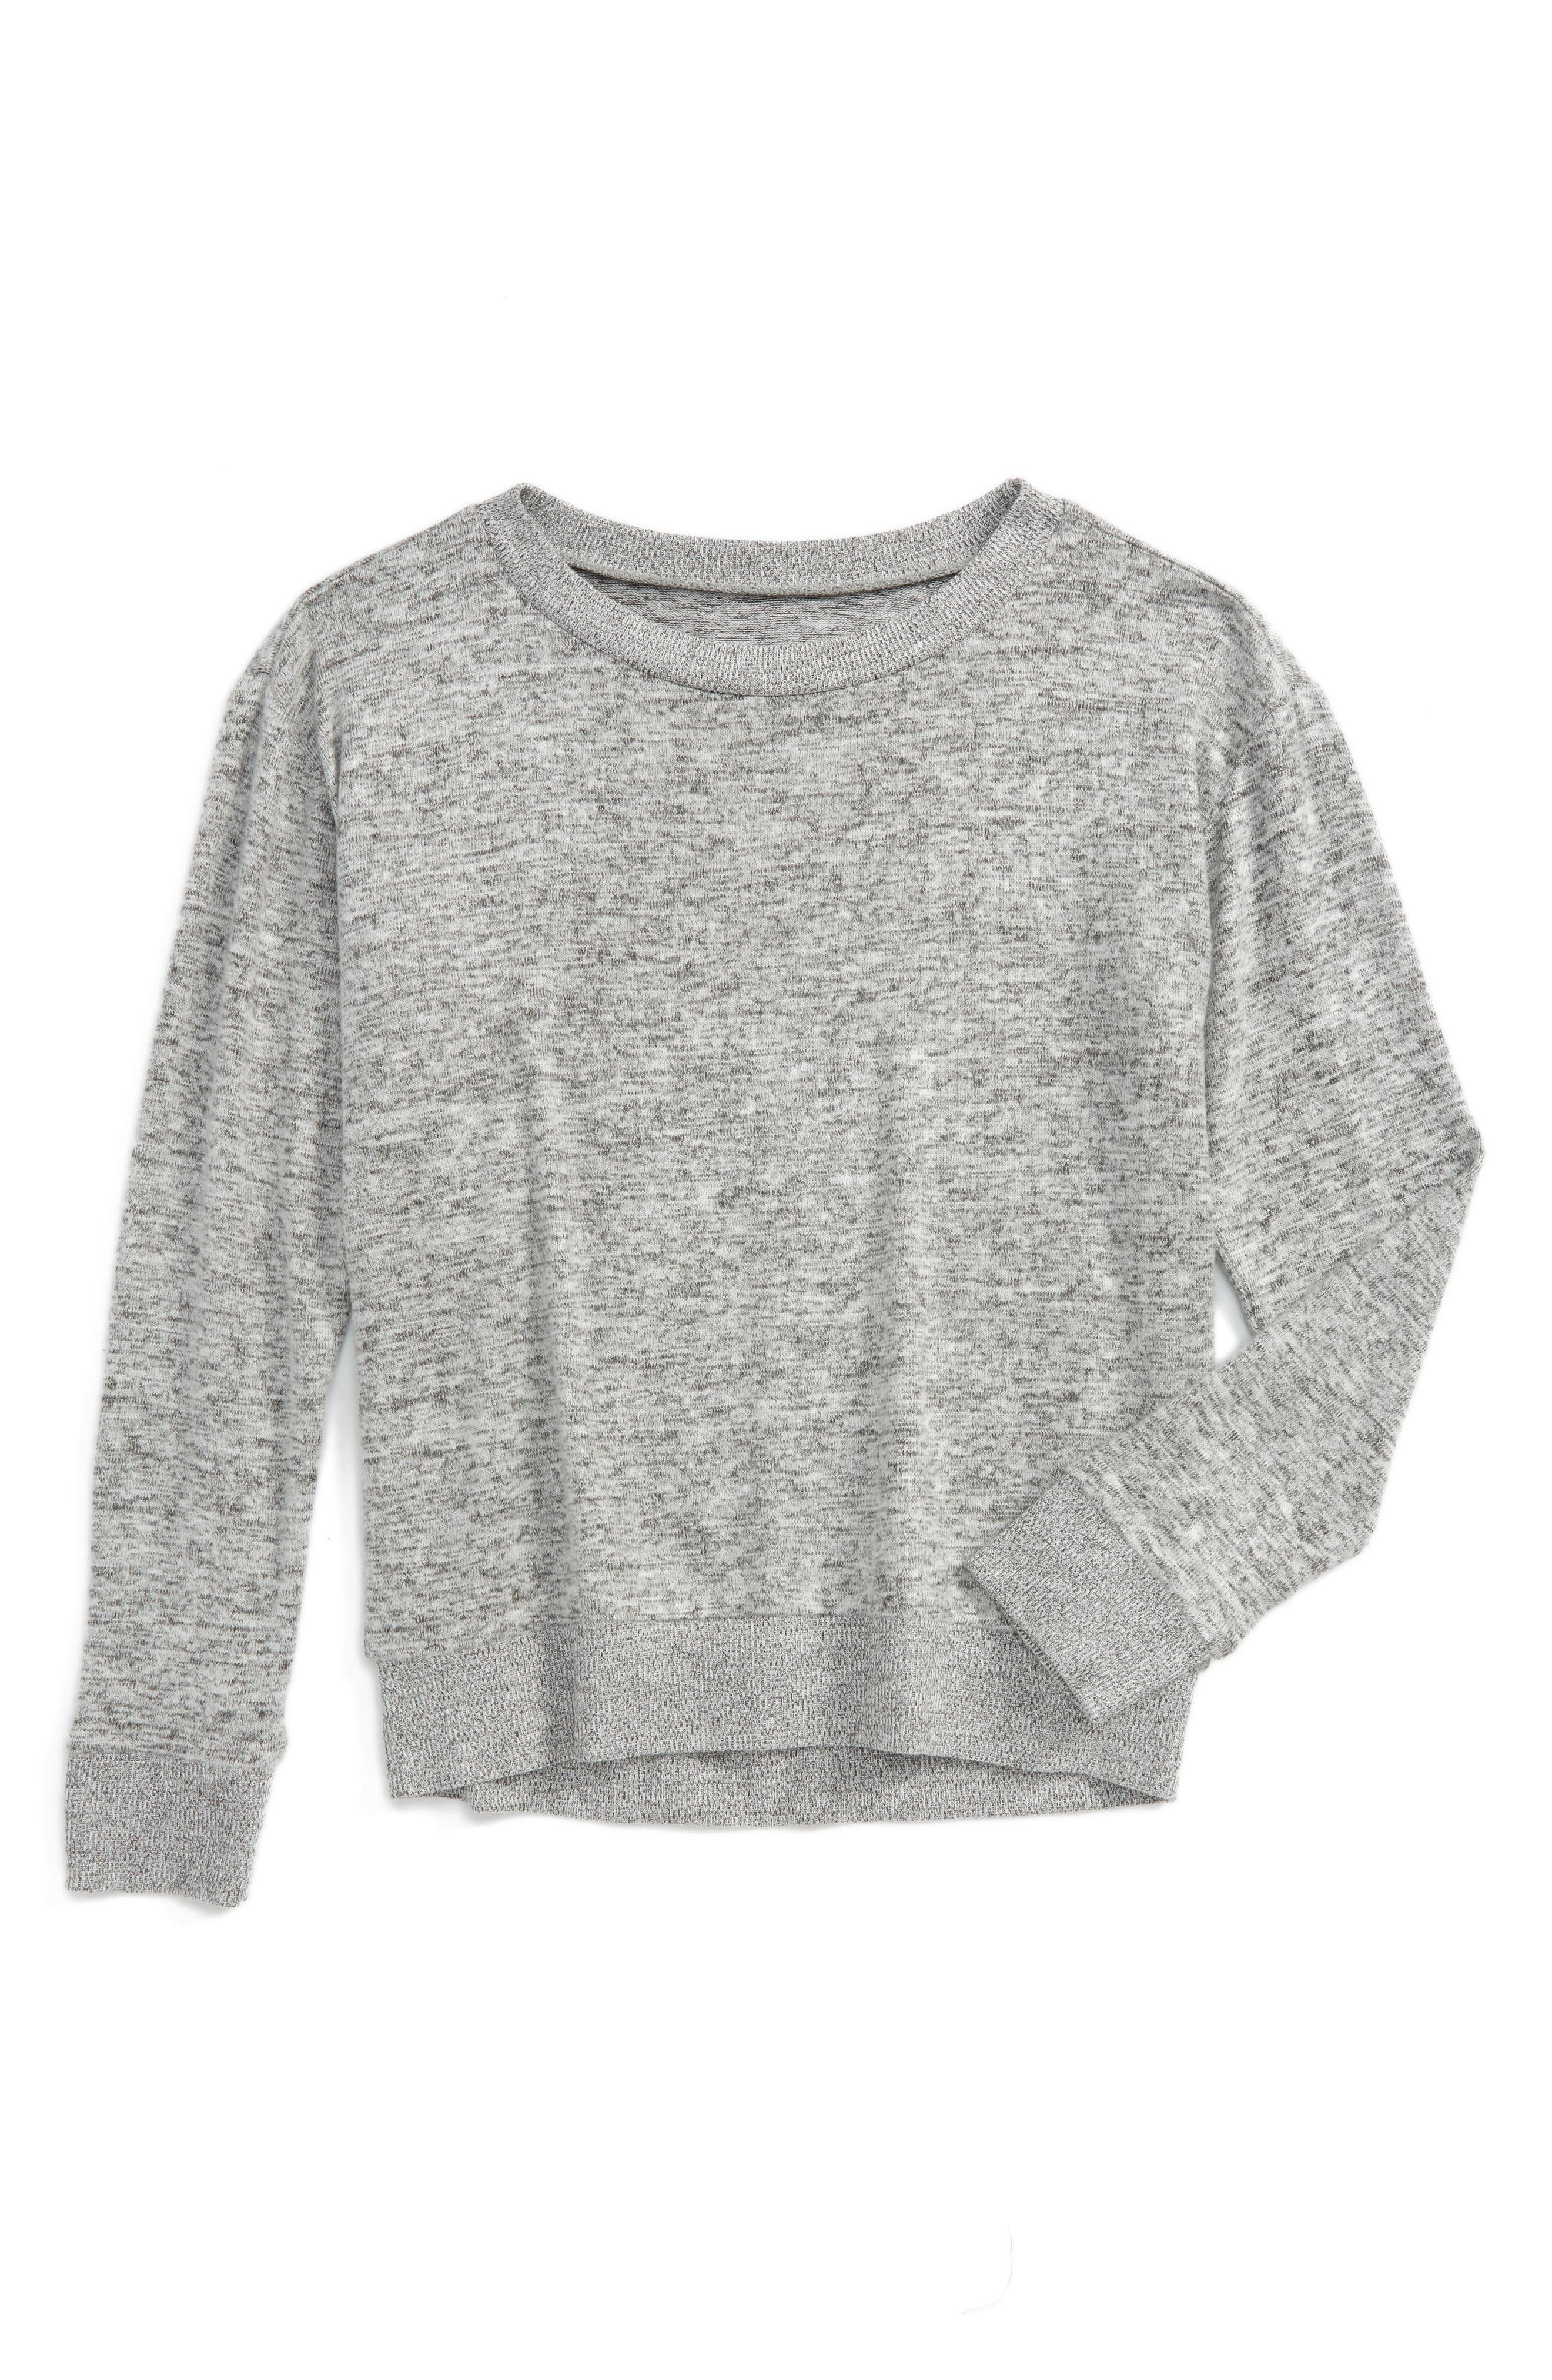 Supersoft Sweater,                             Main thumbnail 1, color,